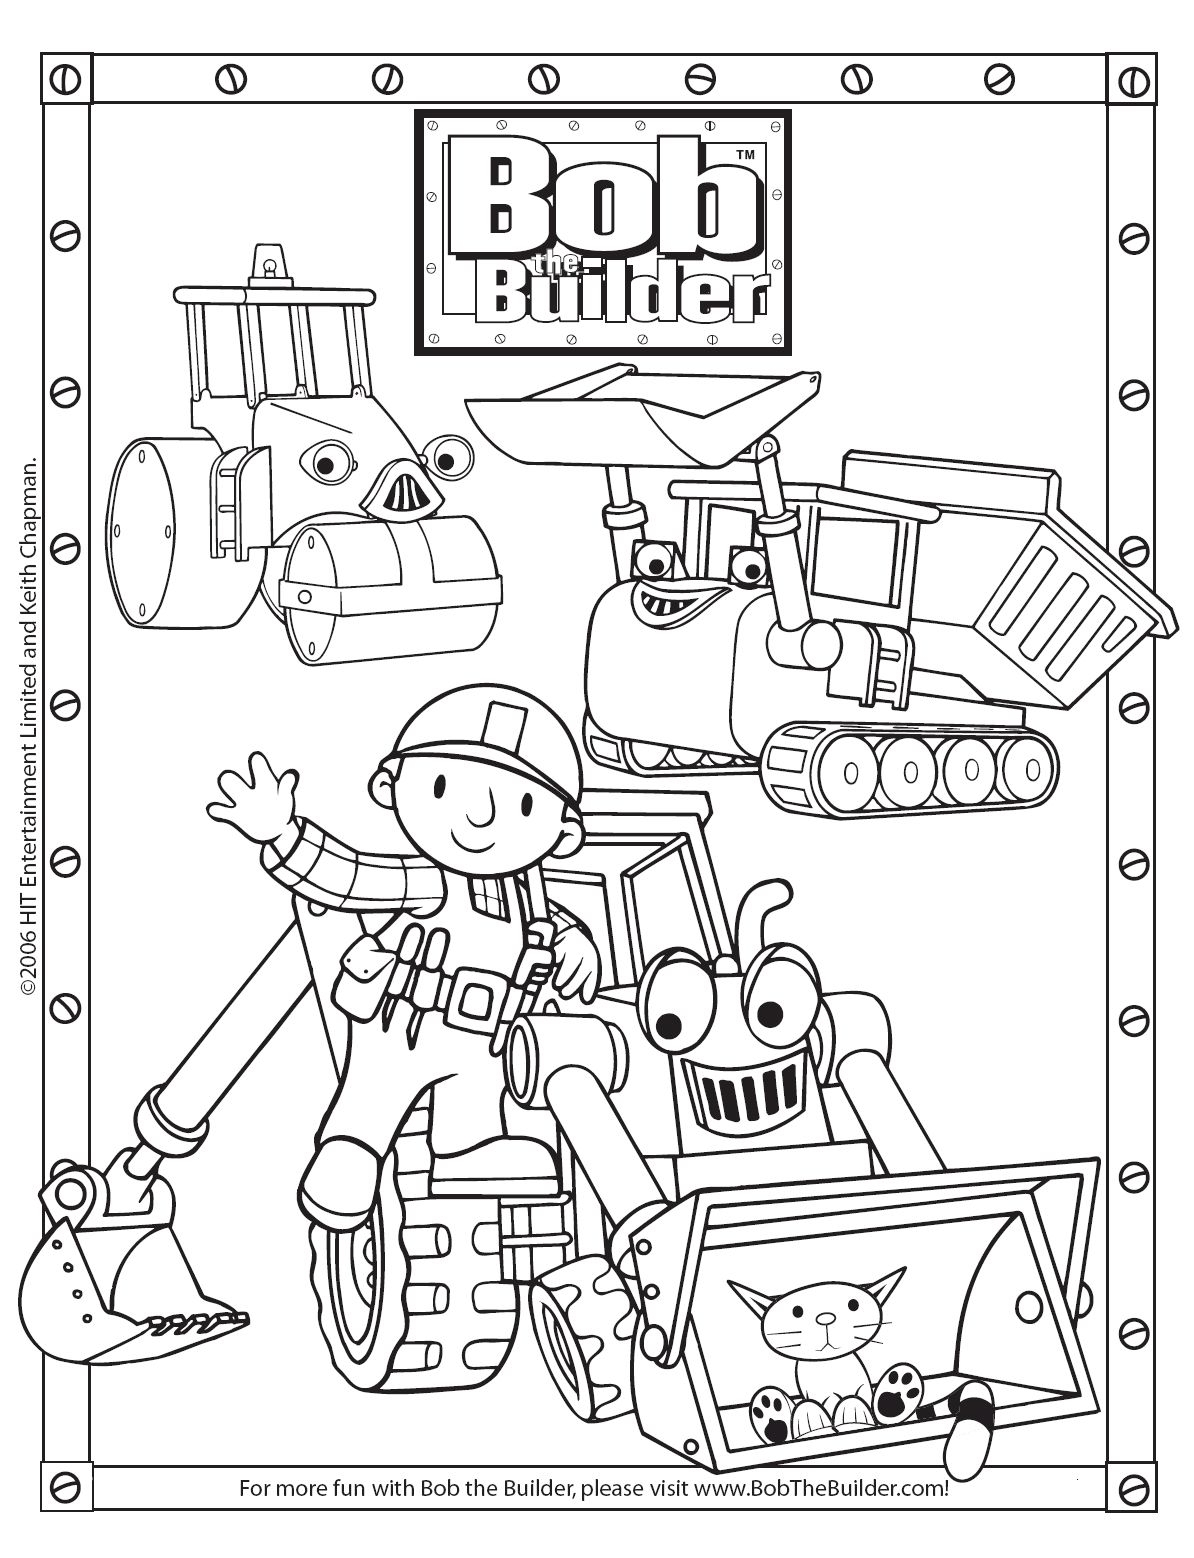 Bob The Builder Coloring Pages At Getcolorings